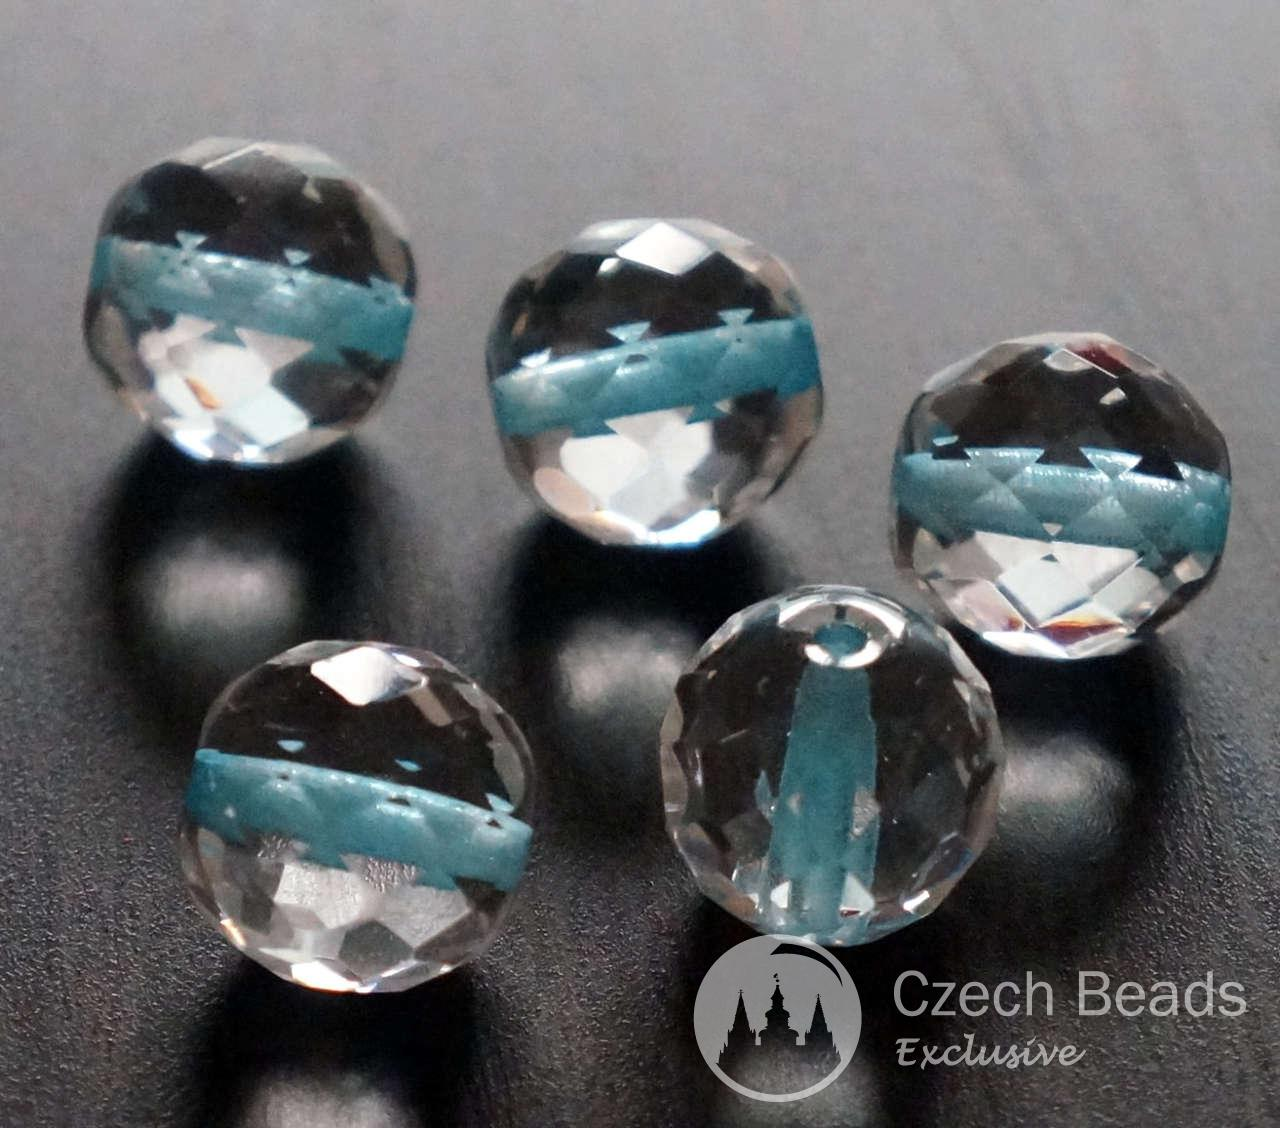 Faceted Turquoise Clear Crystal Large Round Czech Glass Beads Turquoise Clear Faceted Large Beads Crystal Clear Beads Czech Beads 14mm 2pc for $2.4 from Czech Beads Exclusive